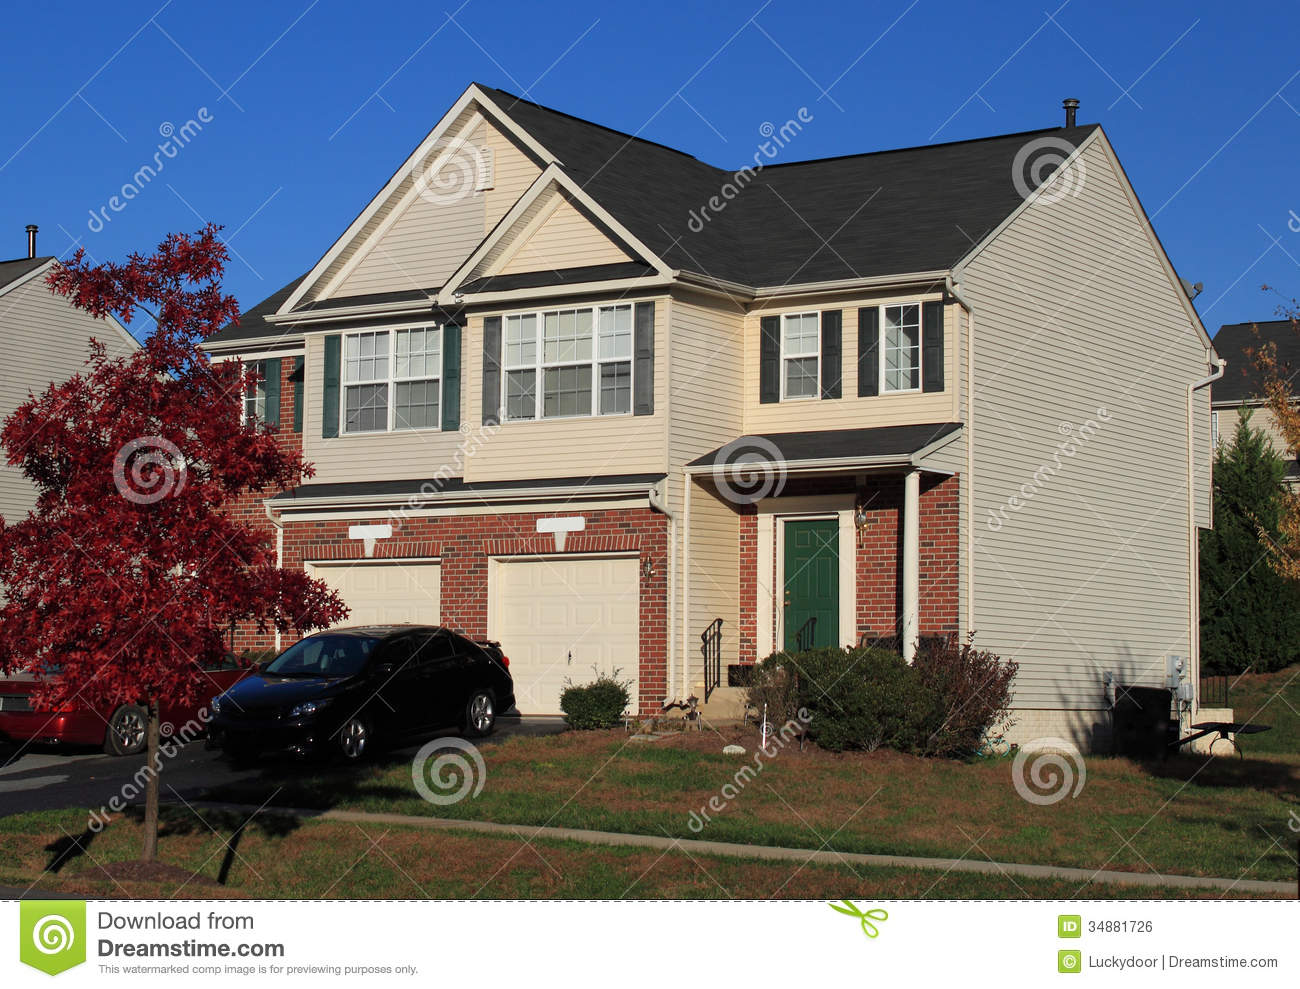 Duplex homes royalty free stock image image 34881726 for Duplex home builders